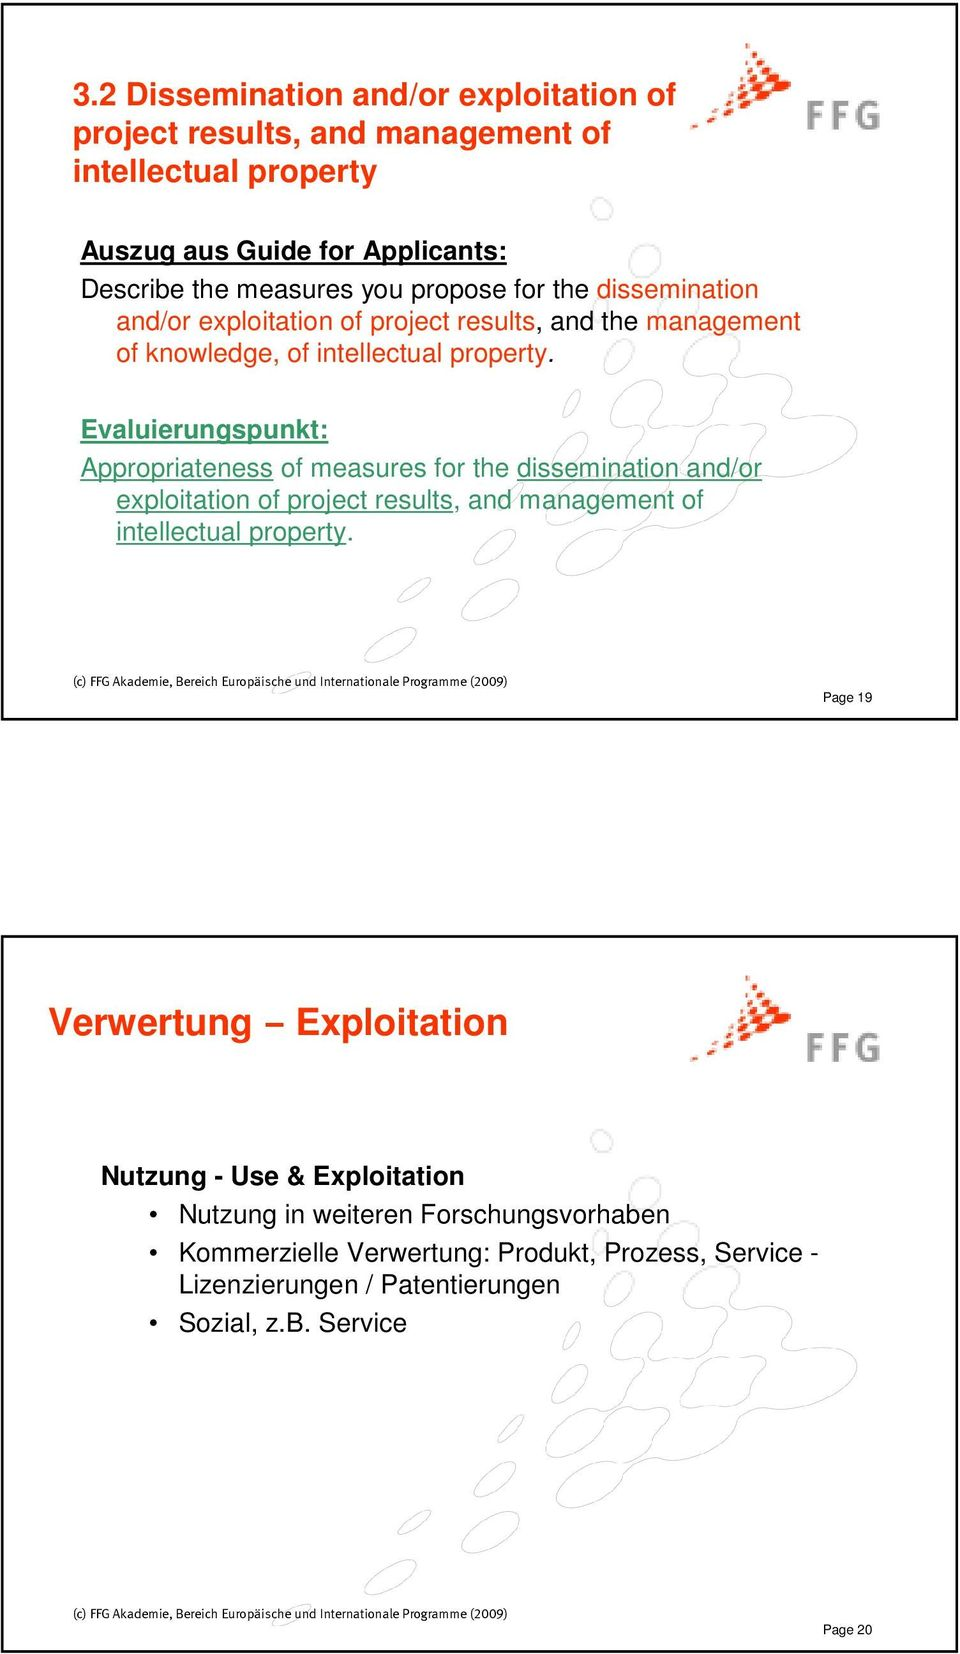 Evaluierungspunkt: Appropriateness of measures for the dissemination and/or exploitation of project results, and management of intellectual property.